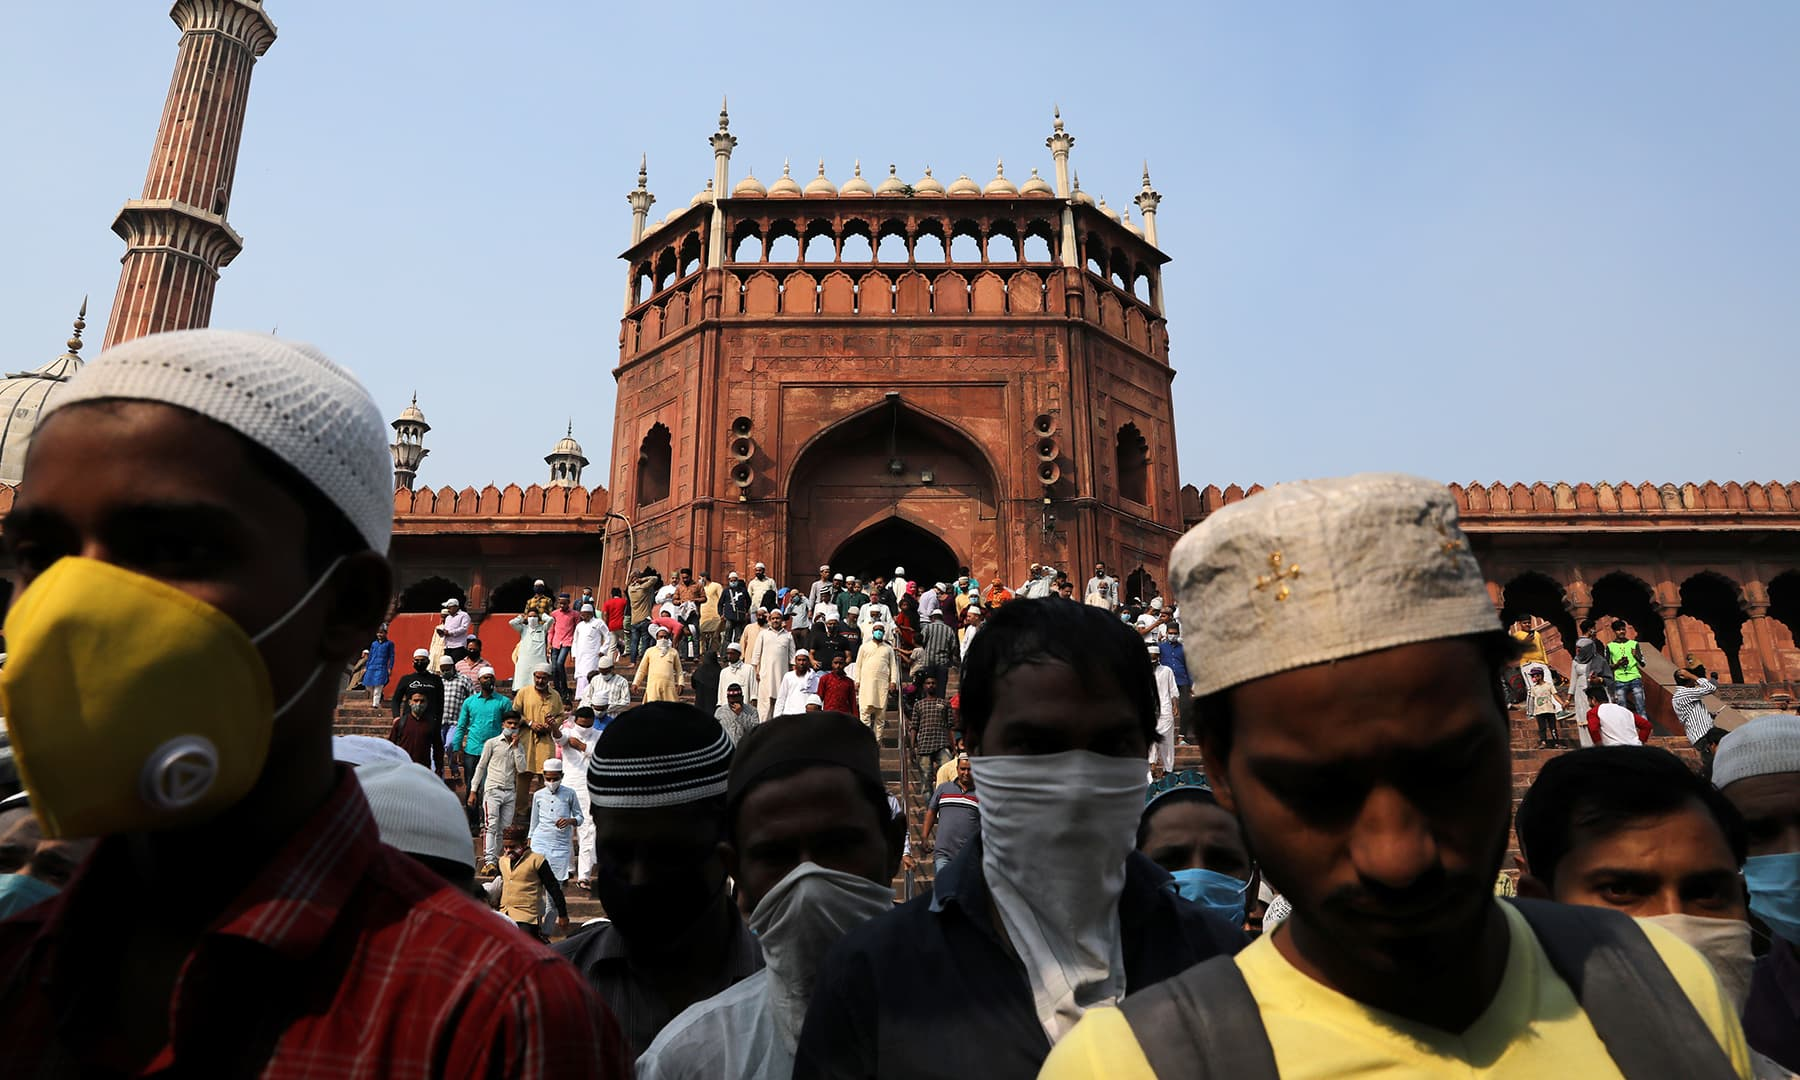 Muslims wearing protective face masks leave Jama Masjid after offering Friday prayers on the occasion of Eid-i-Miladun Nabi in the old quarters of Delhi, India, Oct 30. — Reuters